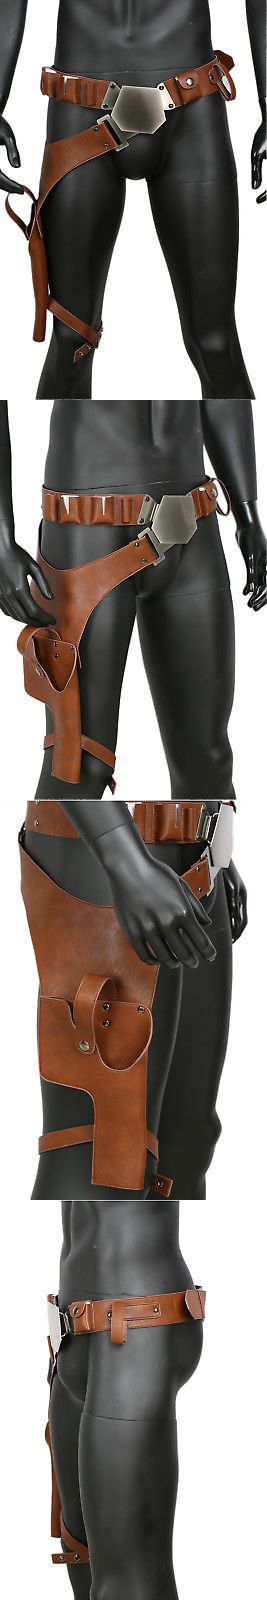 Other Costume Accessories 82161: Xcoser Updated Han Solo Belt Buckle Gun Holster Star Wars Cosplay Props Belt -> BUY IT NOW ONLY: $54 on eBay!